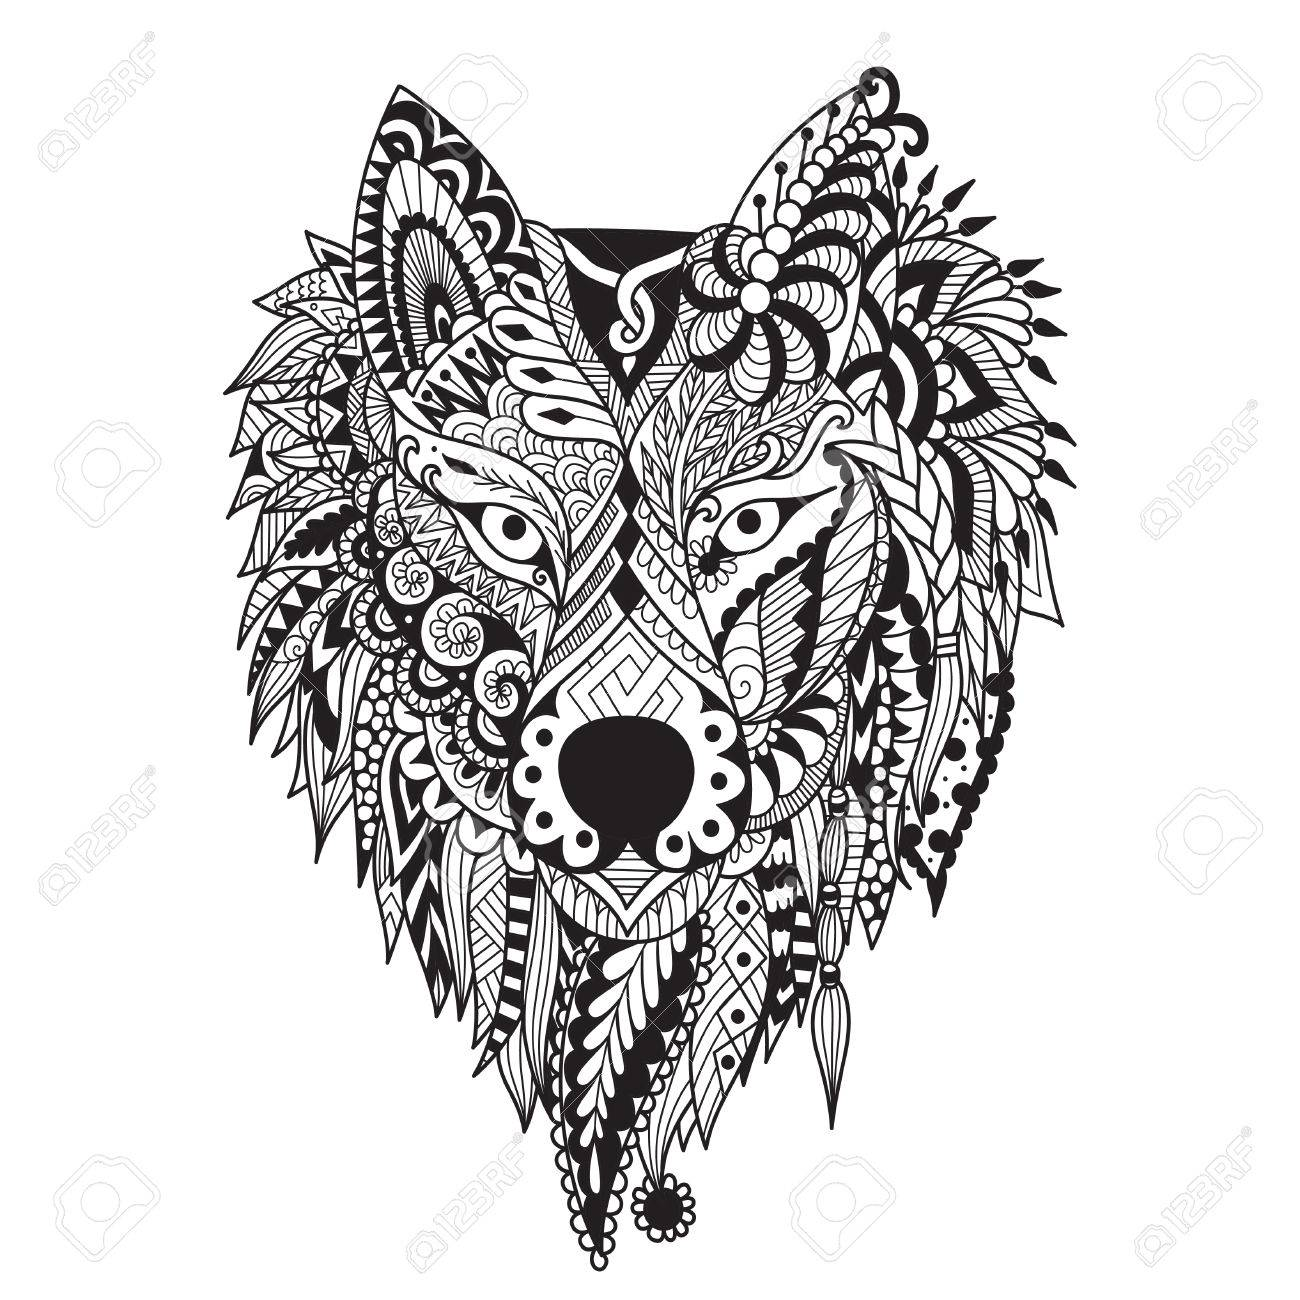 zendoodle stylize of dire wolf design for tattoo bag mug pillow